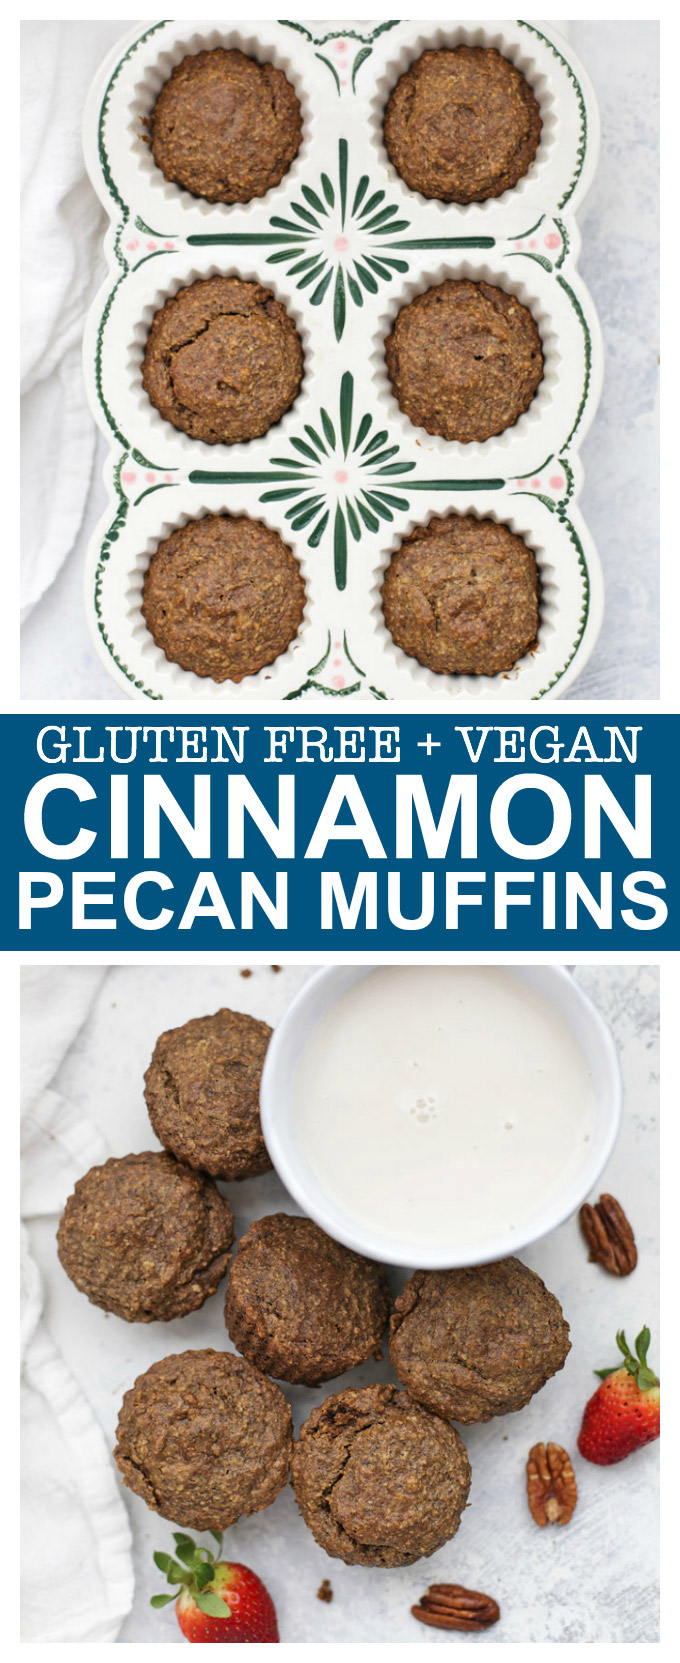 Gluten Free Vegan Cinnamon Pecan Muffins - Made from wholesome ingredients and they taste AMAZING!